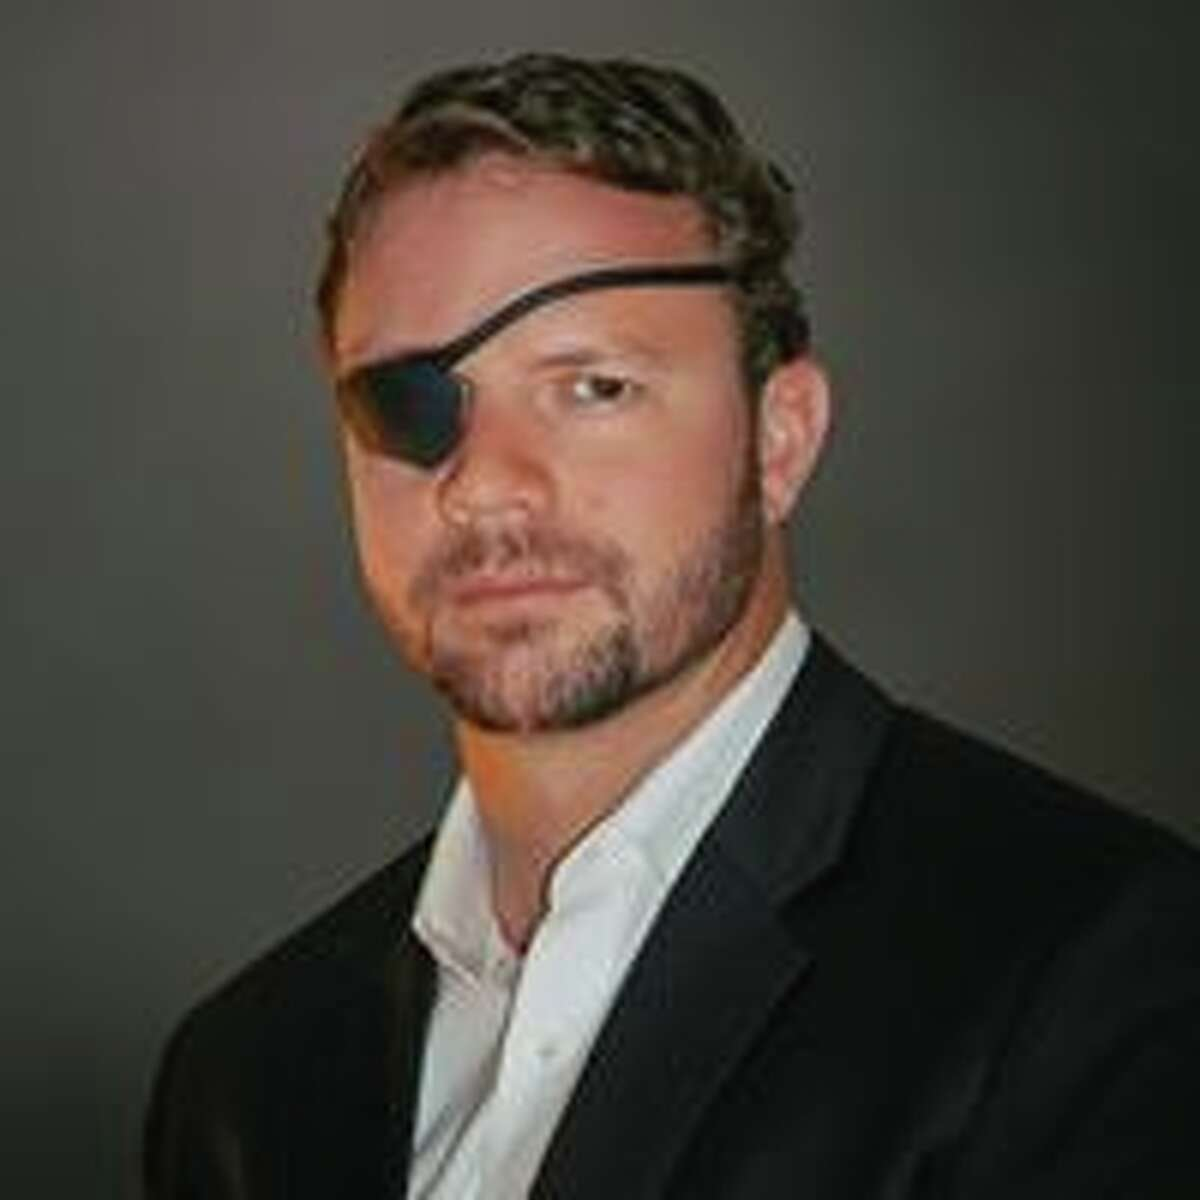 Former Navy SEAL Daniel Crenshaw is vying for the Republican nomination to replace retiring U.S. Rep. Ted Poe.